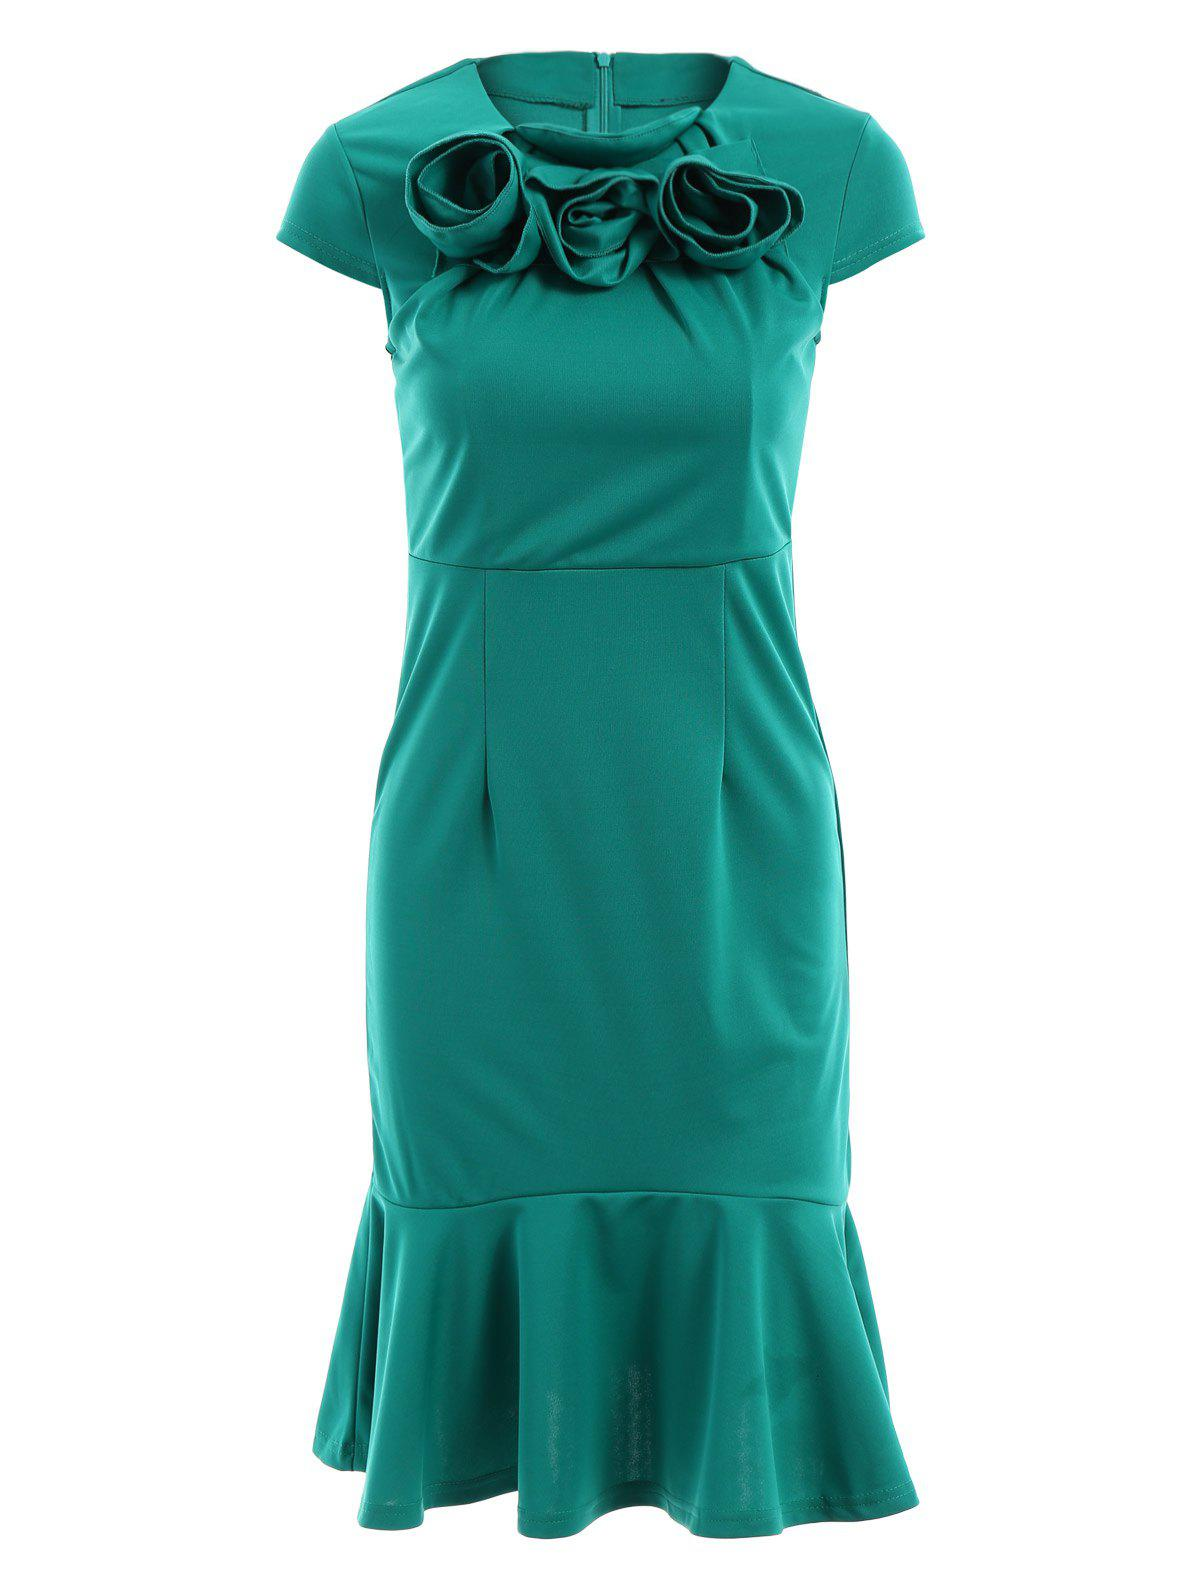 Stylish Round Neck Short Sleeve Solid Color Stereo Flower Design Women's Mermaid Dress - GREEN L